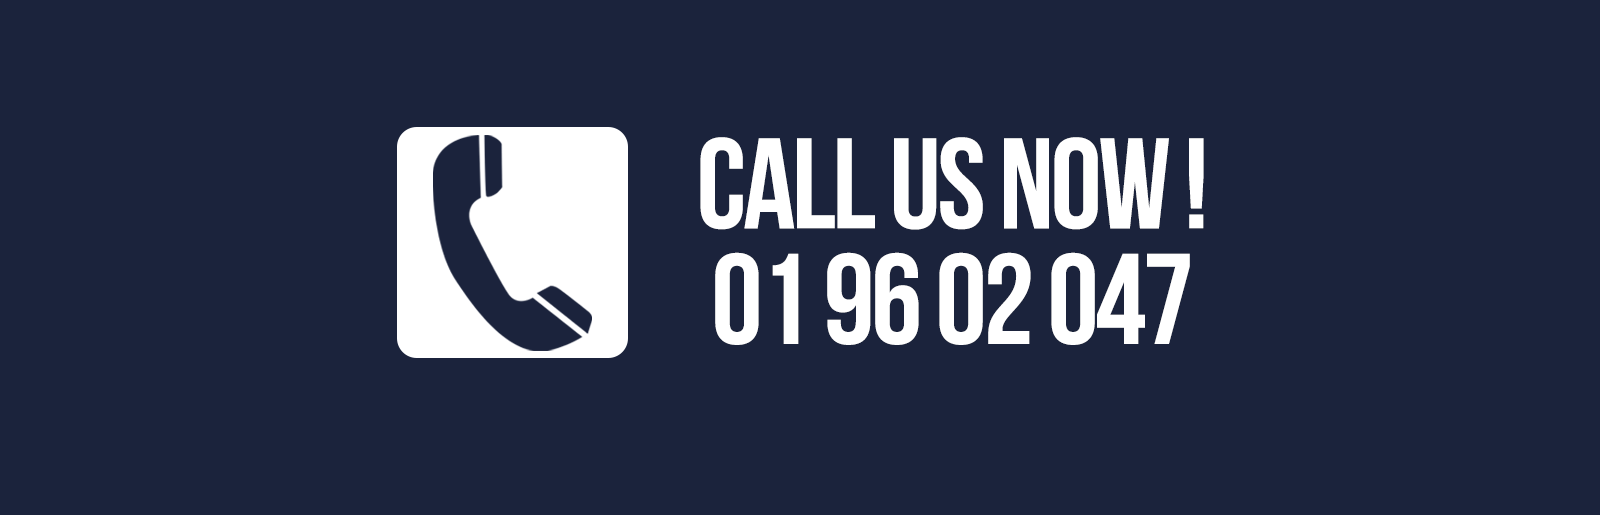 Contact-Joseph-Mc-Nally-Solicitors-Dublin-Banner